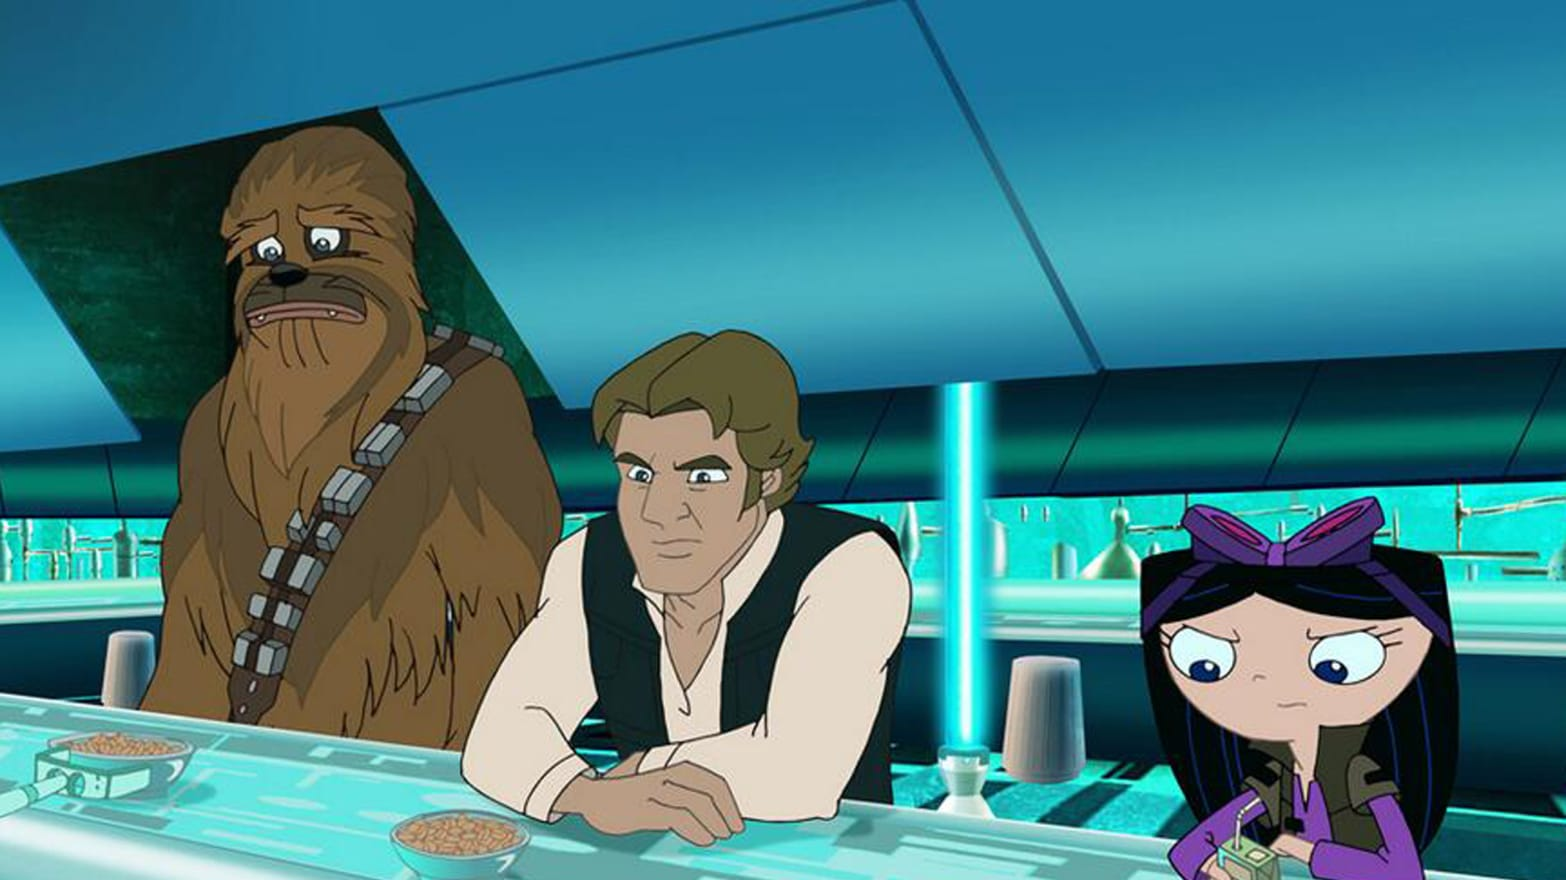 Ferb Images phineas and ferb' pilot disney's premier voyage into 'star wars'